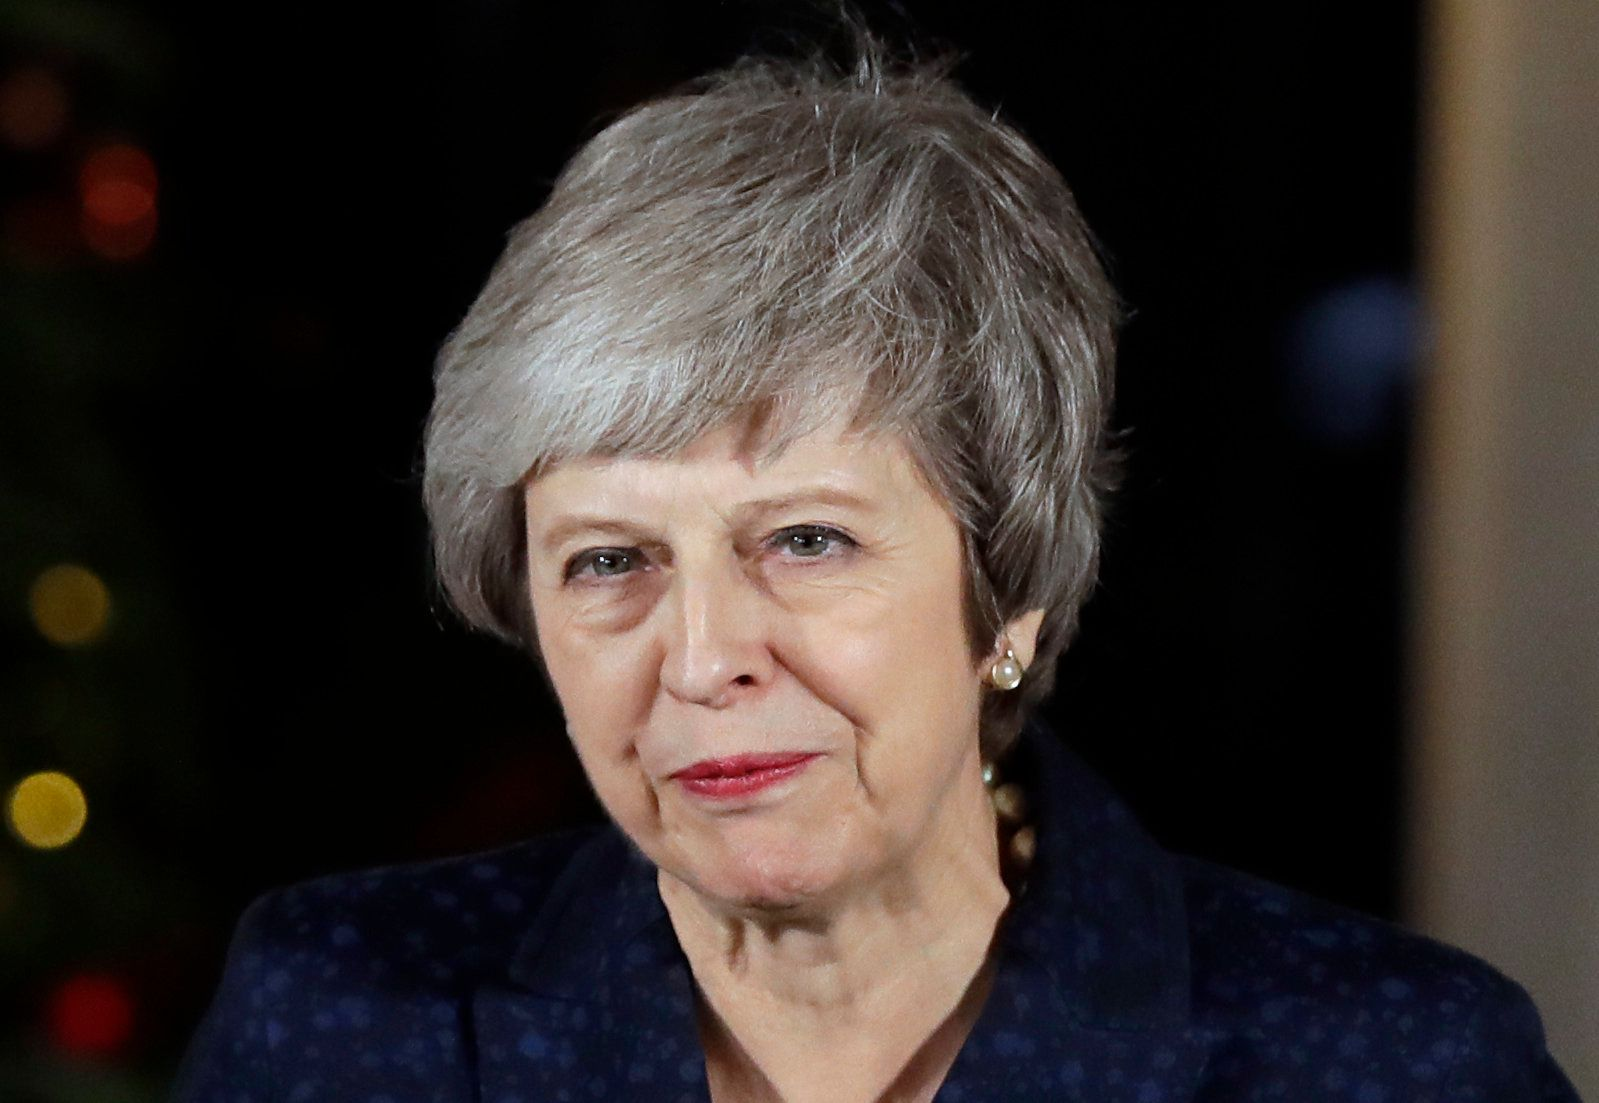 British PM Theresa May Wins Vote Of No Confidence. What Happens